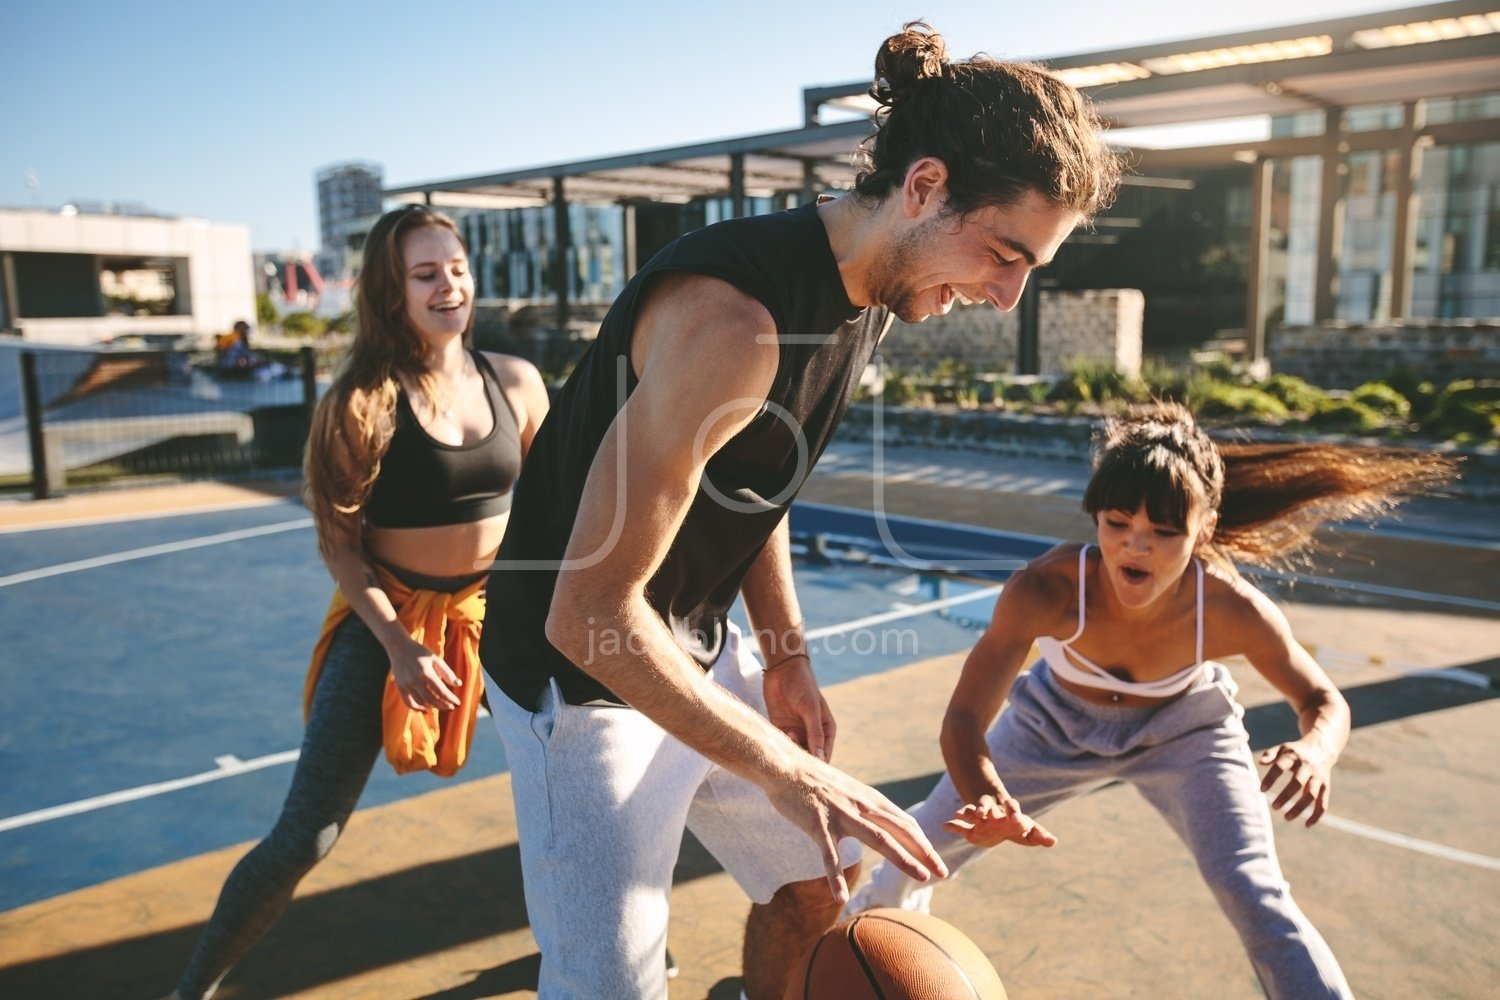 Friends Playing Basketball Game On Street Court Jacob Lund Photography Store Premium Stock Photo